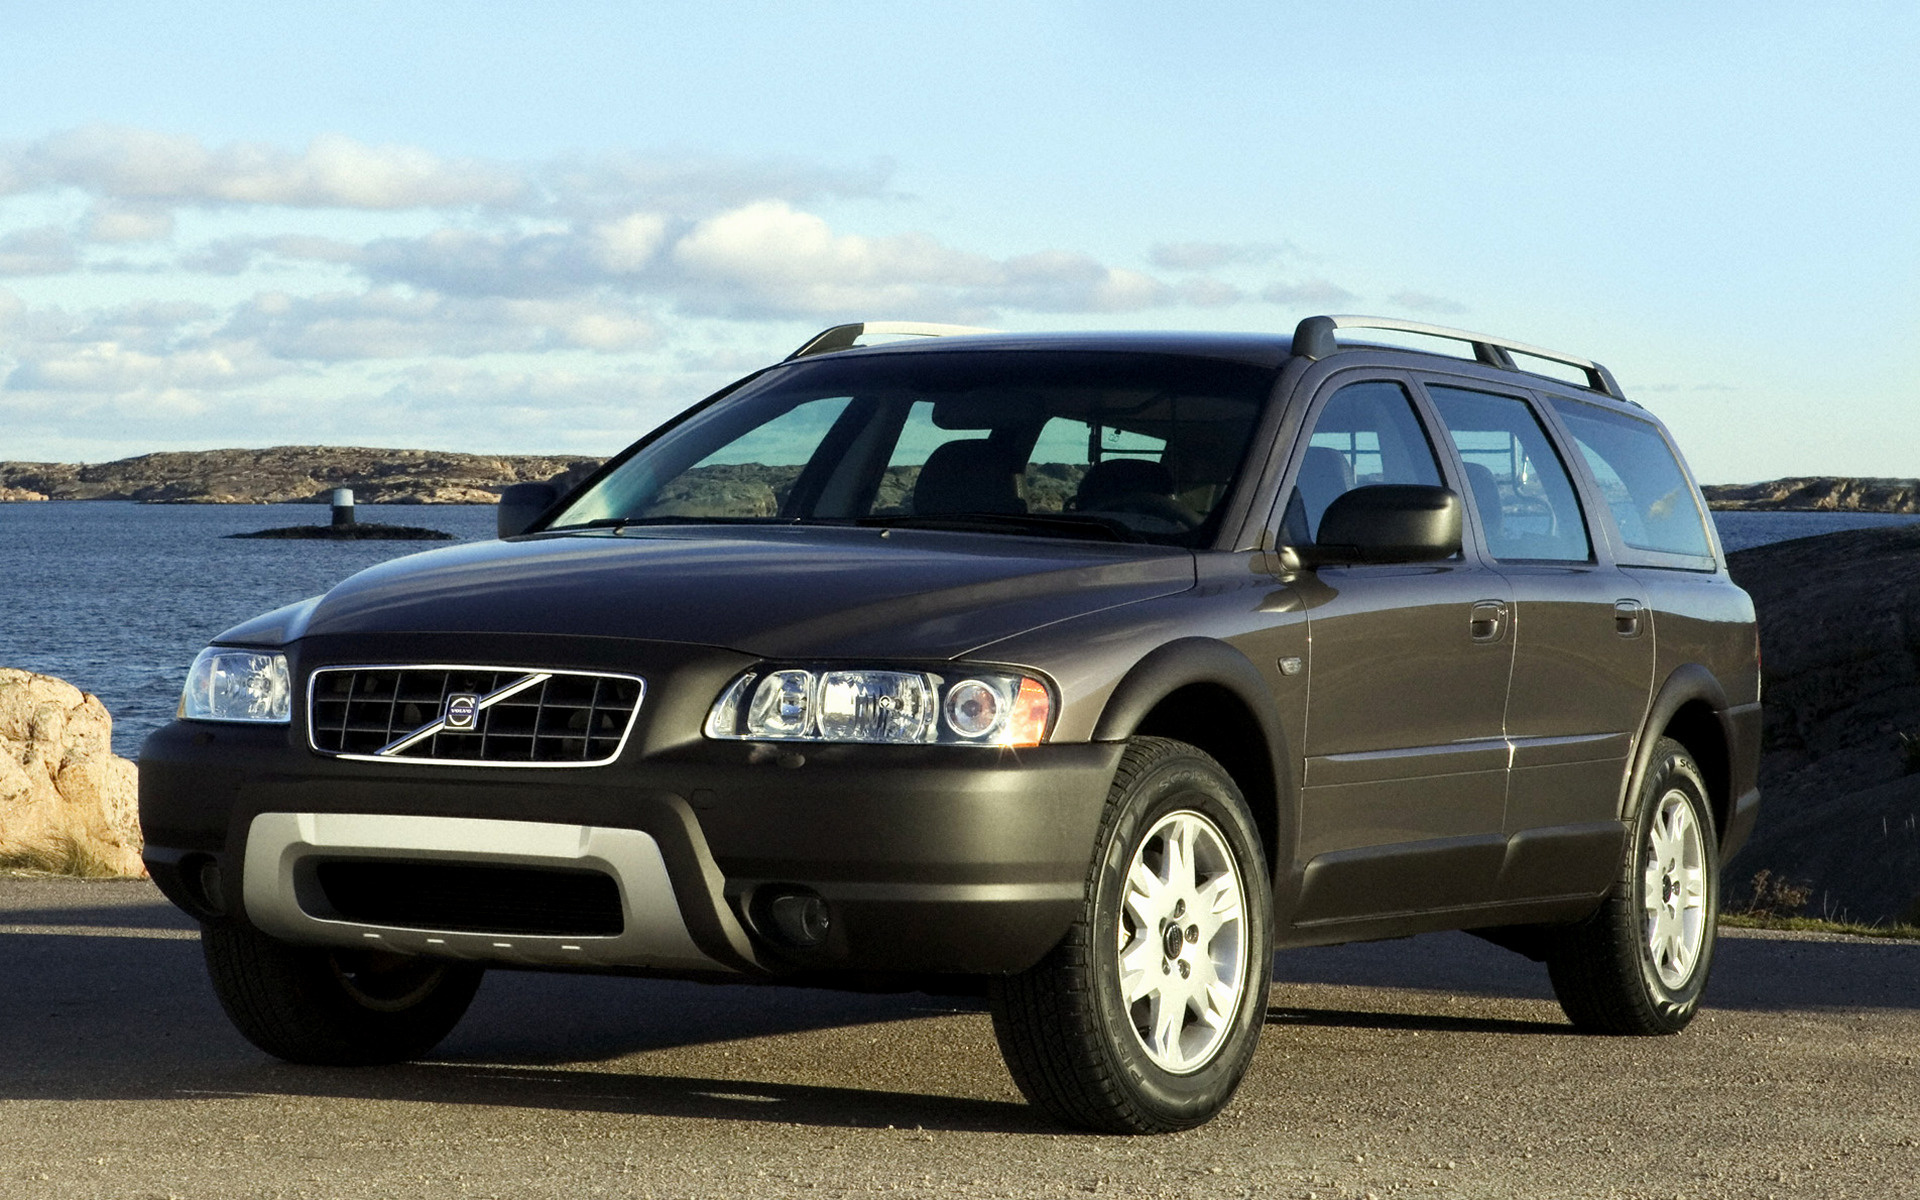 Volvo Xc Car Wallpaper on 1997 Dodge Concept